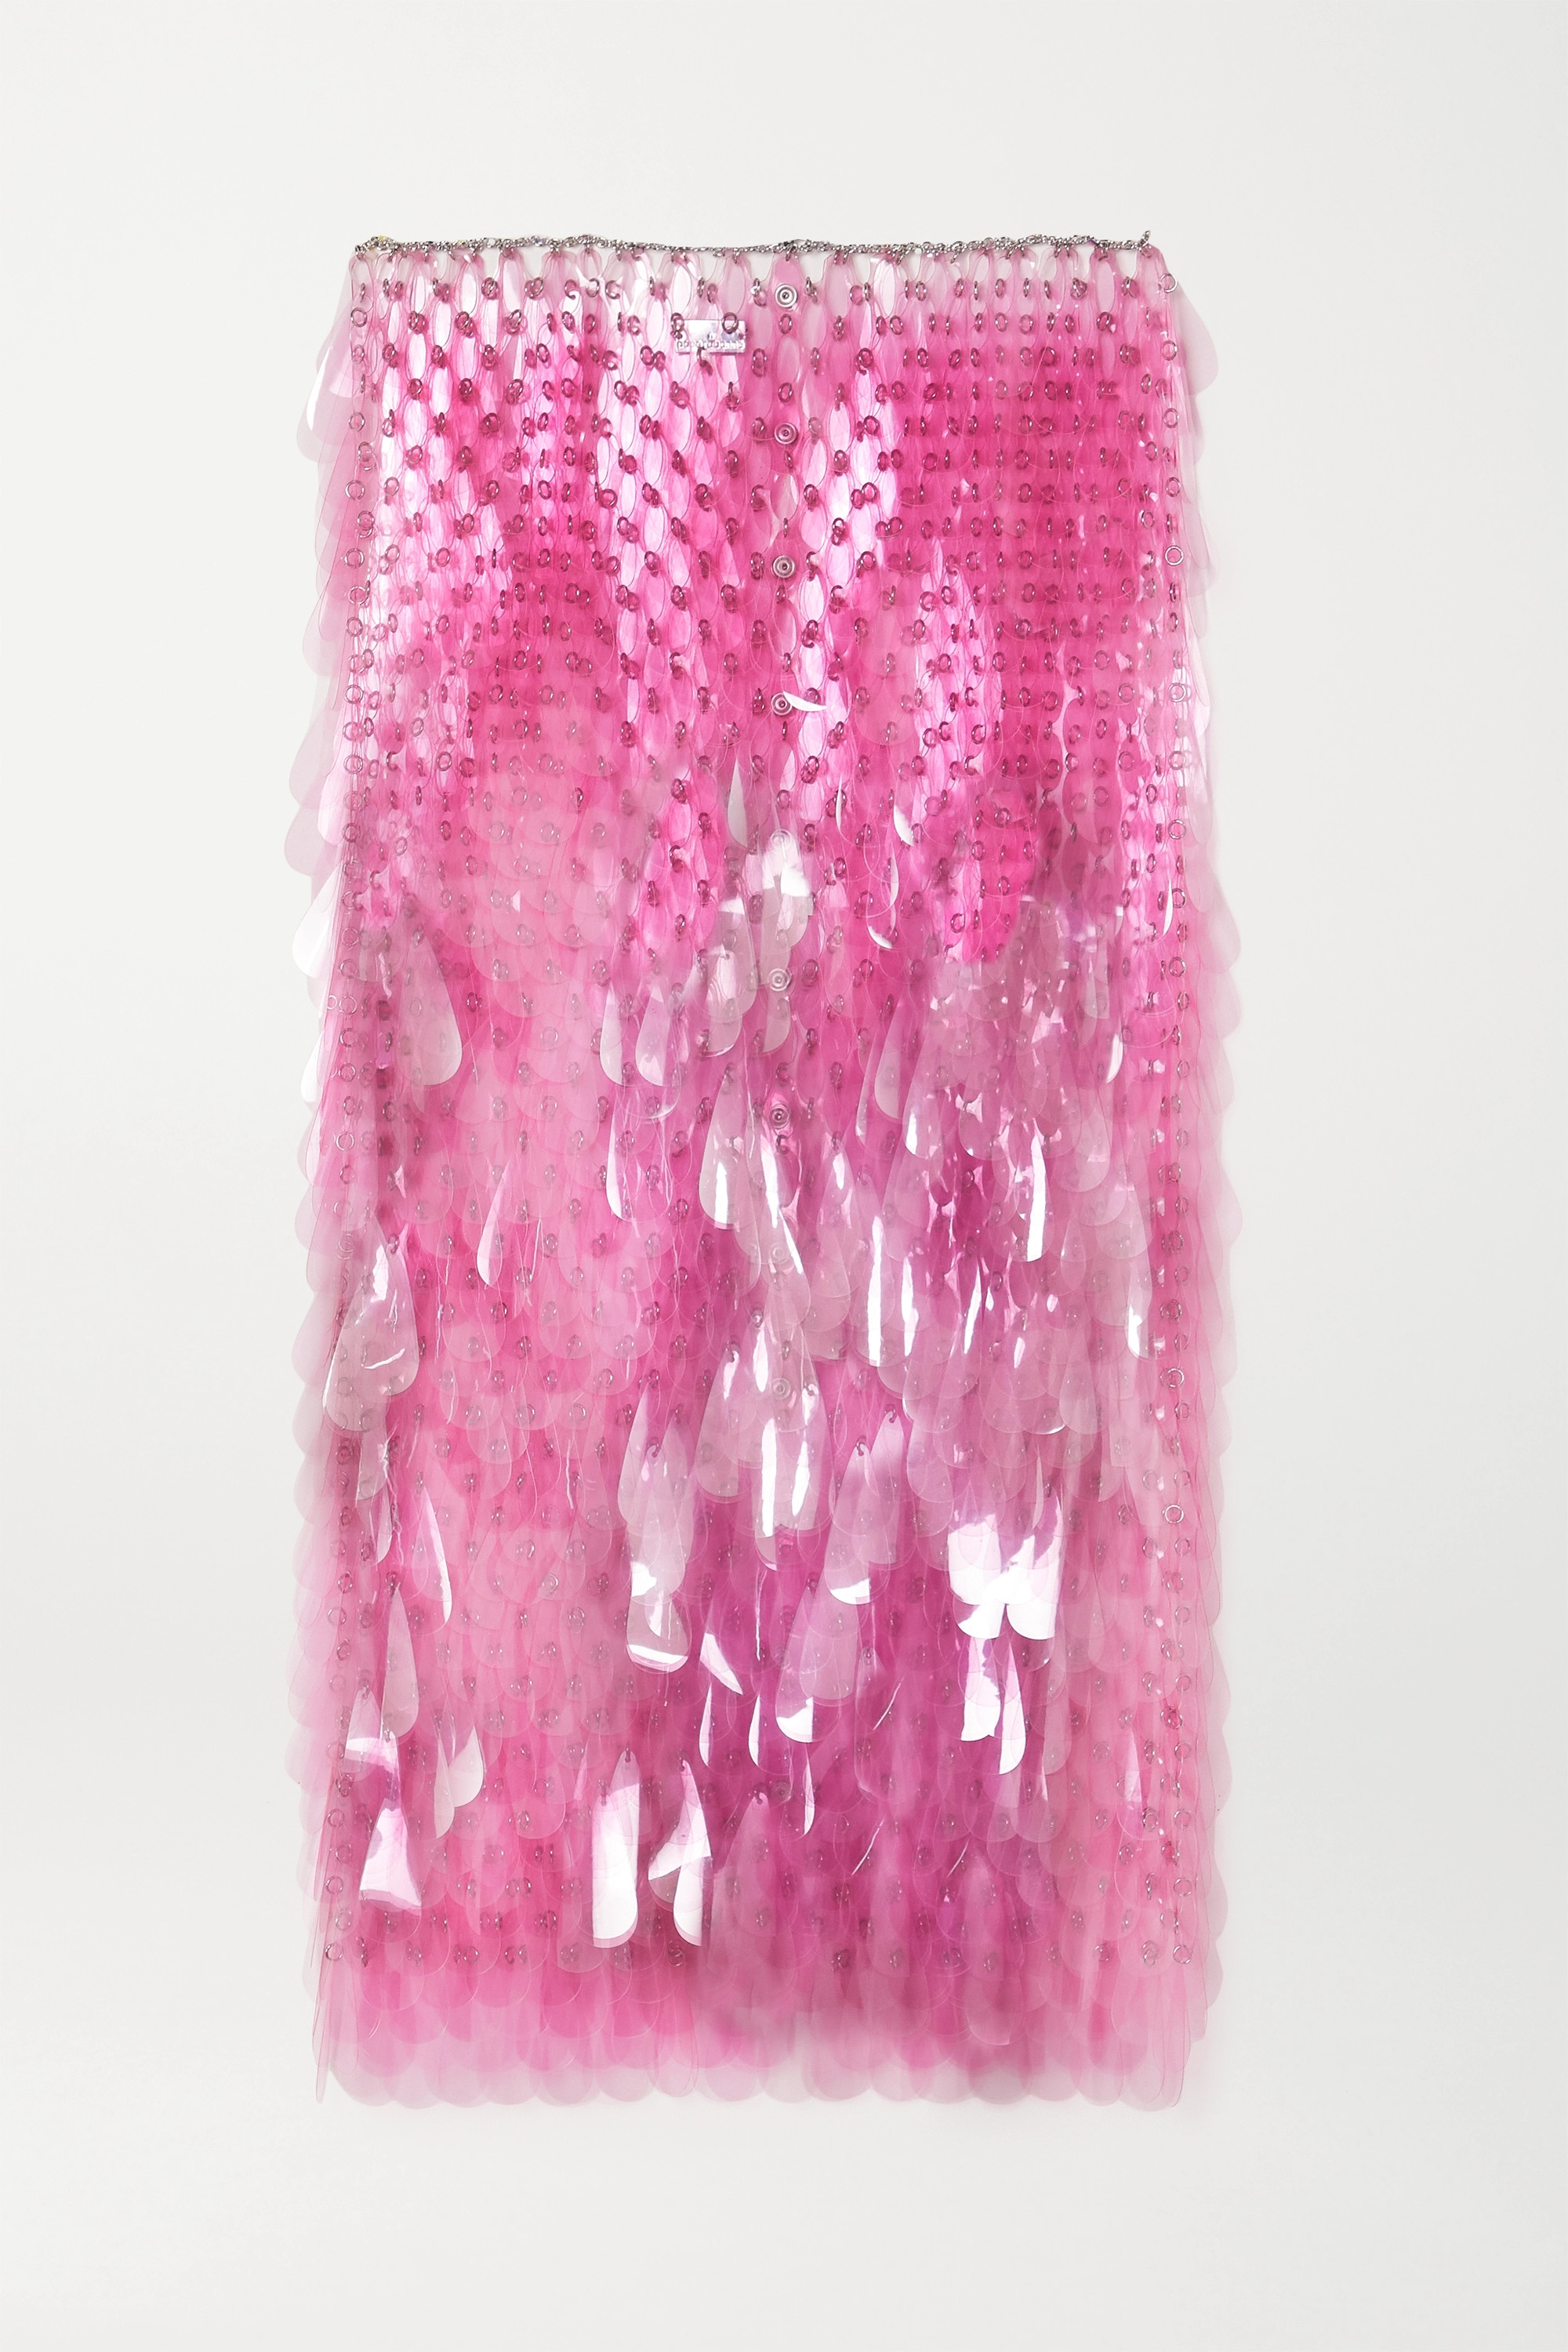 Paco Rabanne Paillette-embellished chainmail midi skirt